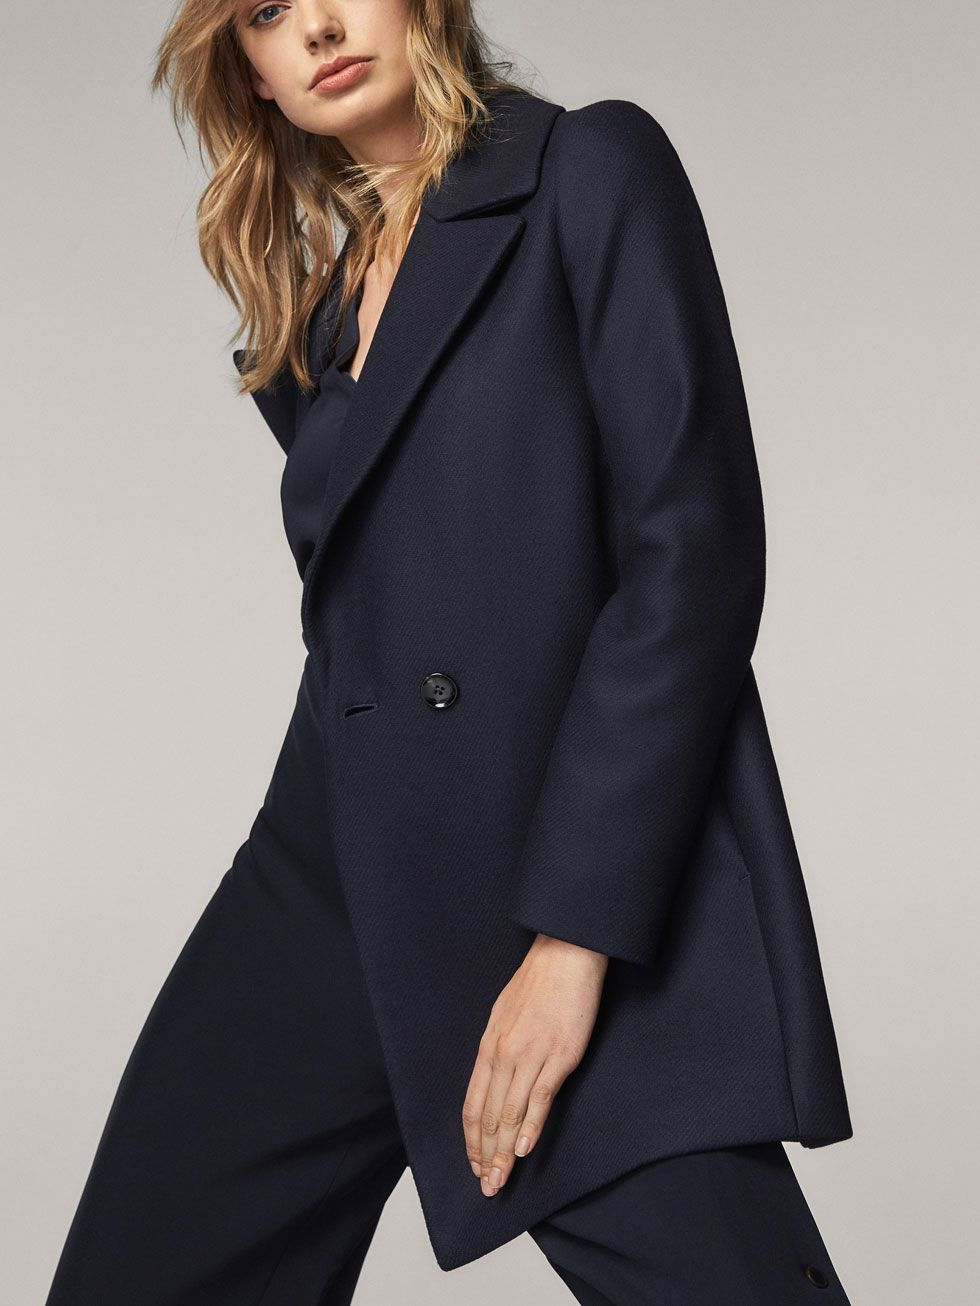 f9d44280a57b Spring Summer 2017 Women´s NAVY BLUE WOOL COAT at Massimo Dutti for 2590.  Effortless elegance!